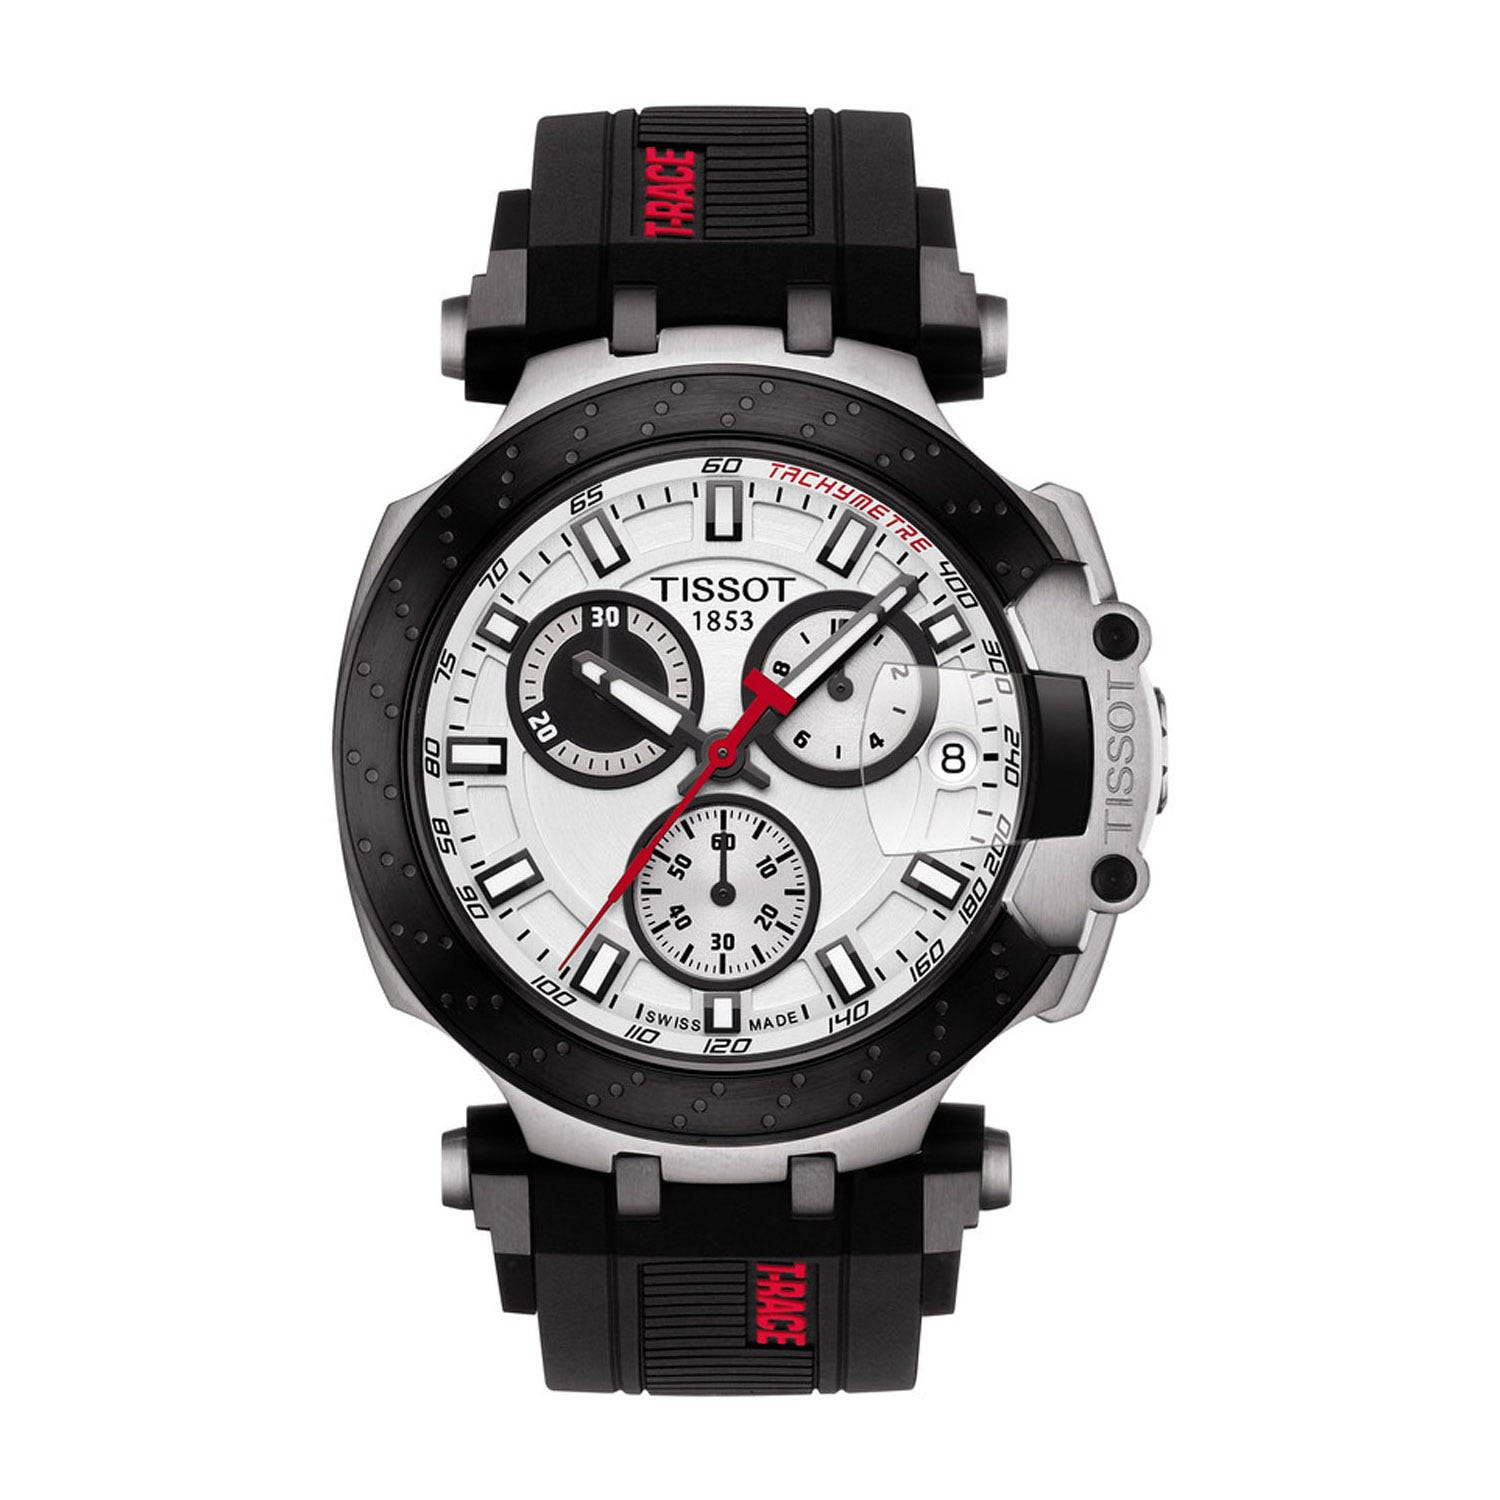 Tissot T-Race Chronograph Black Rubber 43mm Men's Watch